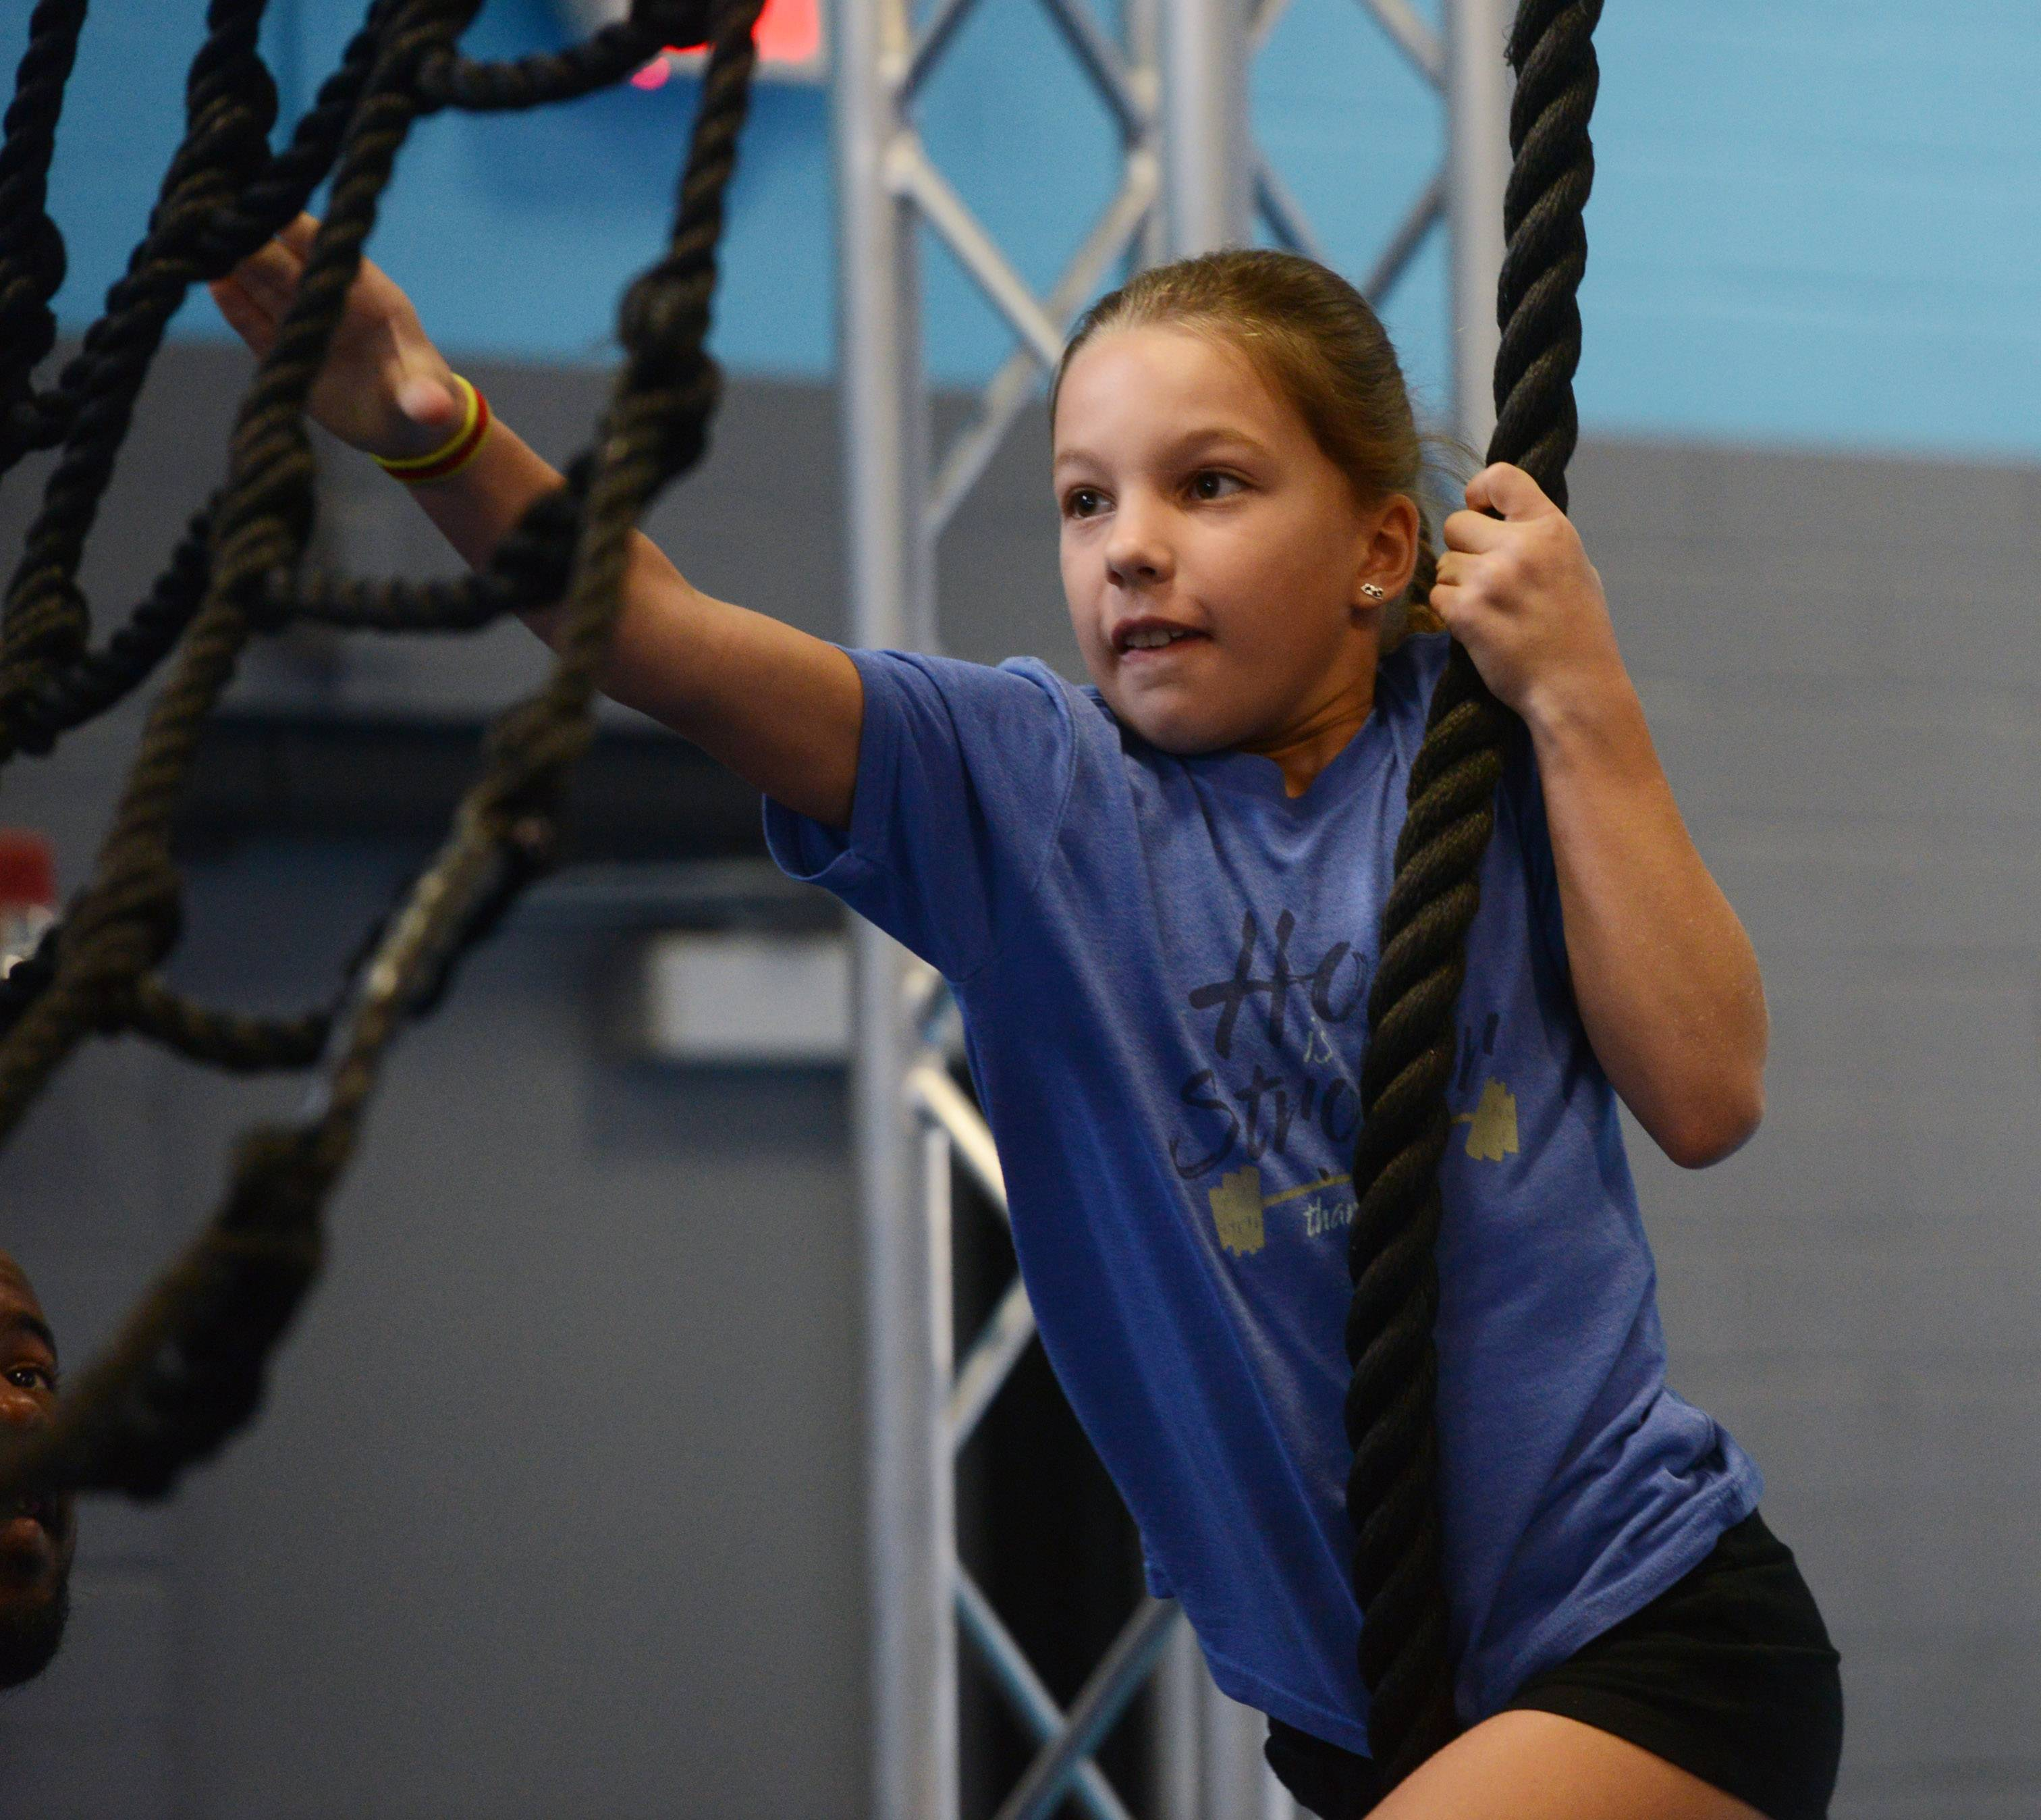 Elsie Phipps, 9, swings from a rope to a net at the Windy City Ninjas gym in Elmhurst. Owner Tom Rhomberg says the gym is a perfect spot for kids to put away their electronic devices and get excited about physical fitness.